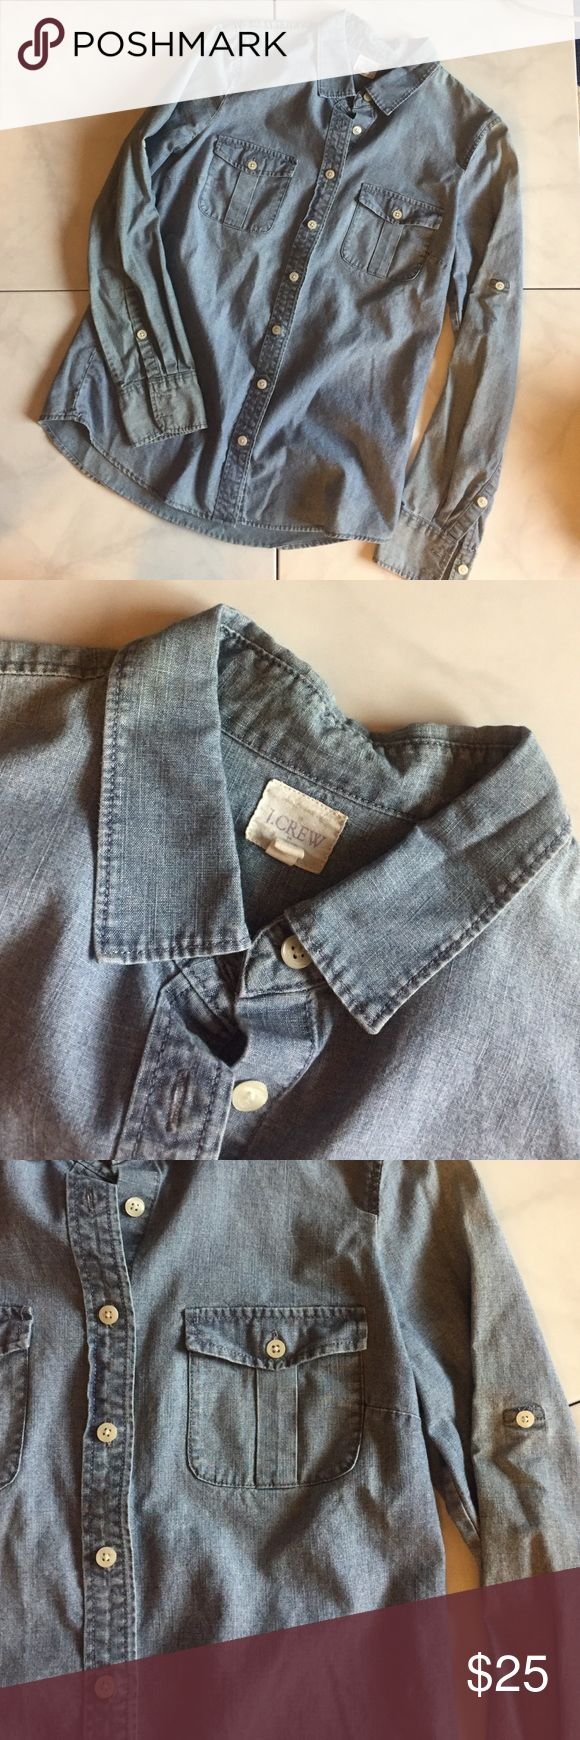 J Crew Factory chambray top. Size XS Chambray tops are my favorite basic. Wear it with leggings. Wear it with a pencil skirt. Wear it with a cute pair of chinos. This shirt is in great condition. J. Crew Tops Button Down Shirts